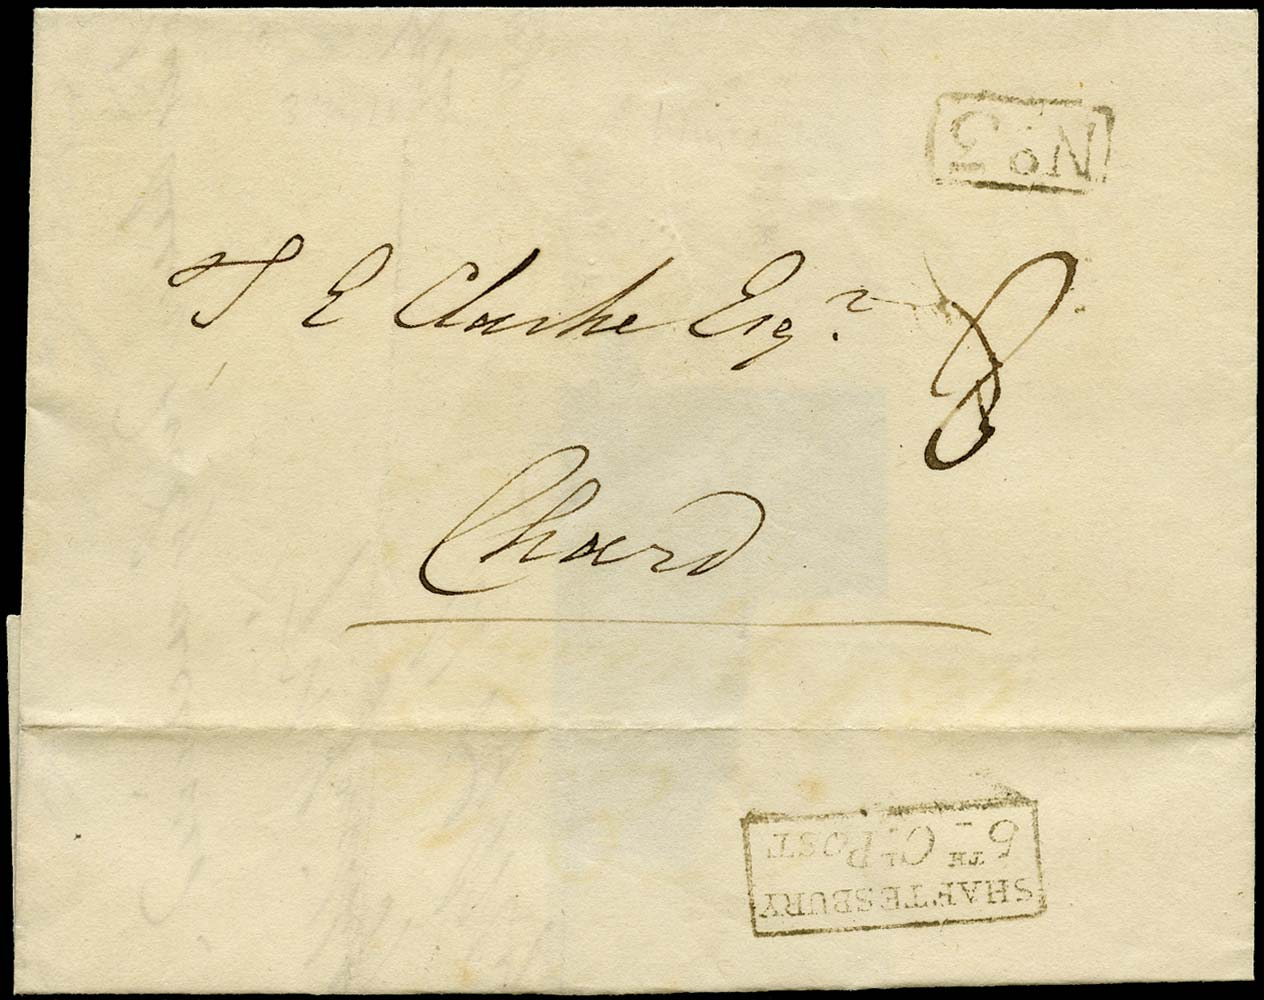 GB 1828 Pre-Stamp Shaftsbury 5th Clause Post